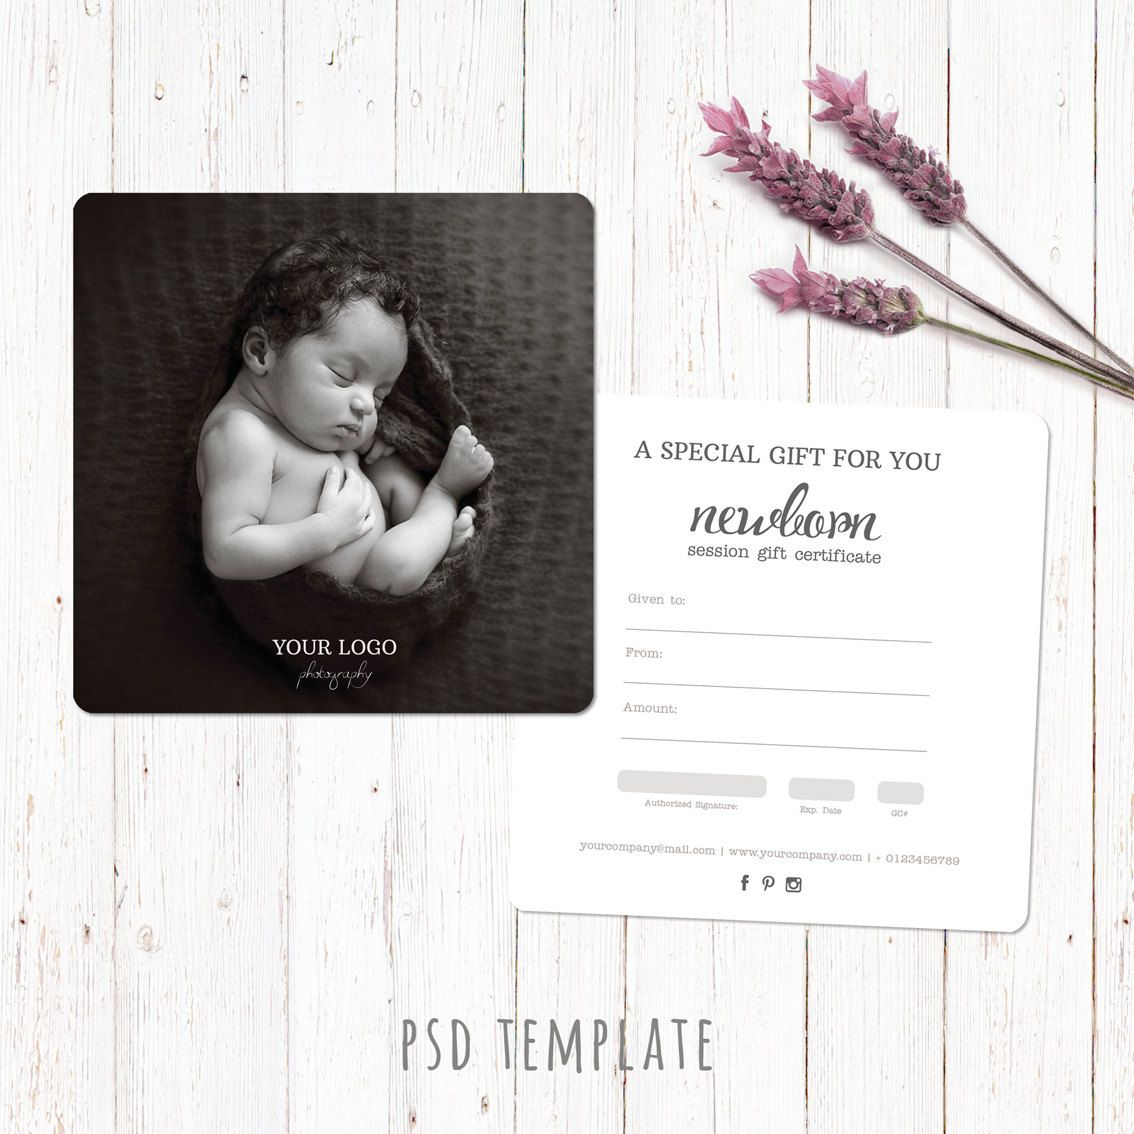 Gift certificate template newborn session photography gift card gift certificate template newborn session photography gift card marketing voucher card fully editable yelopaper Image collections